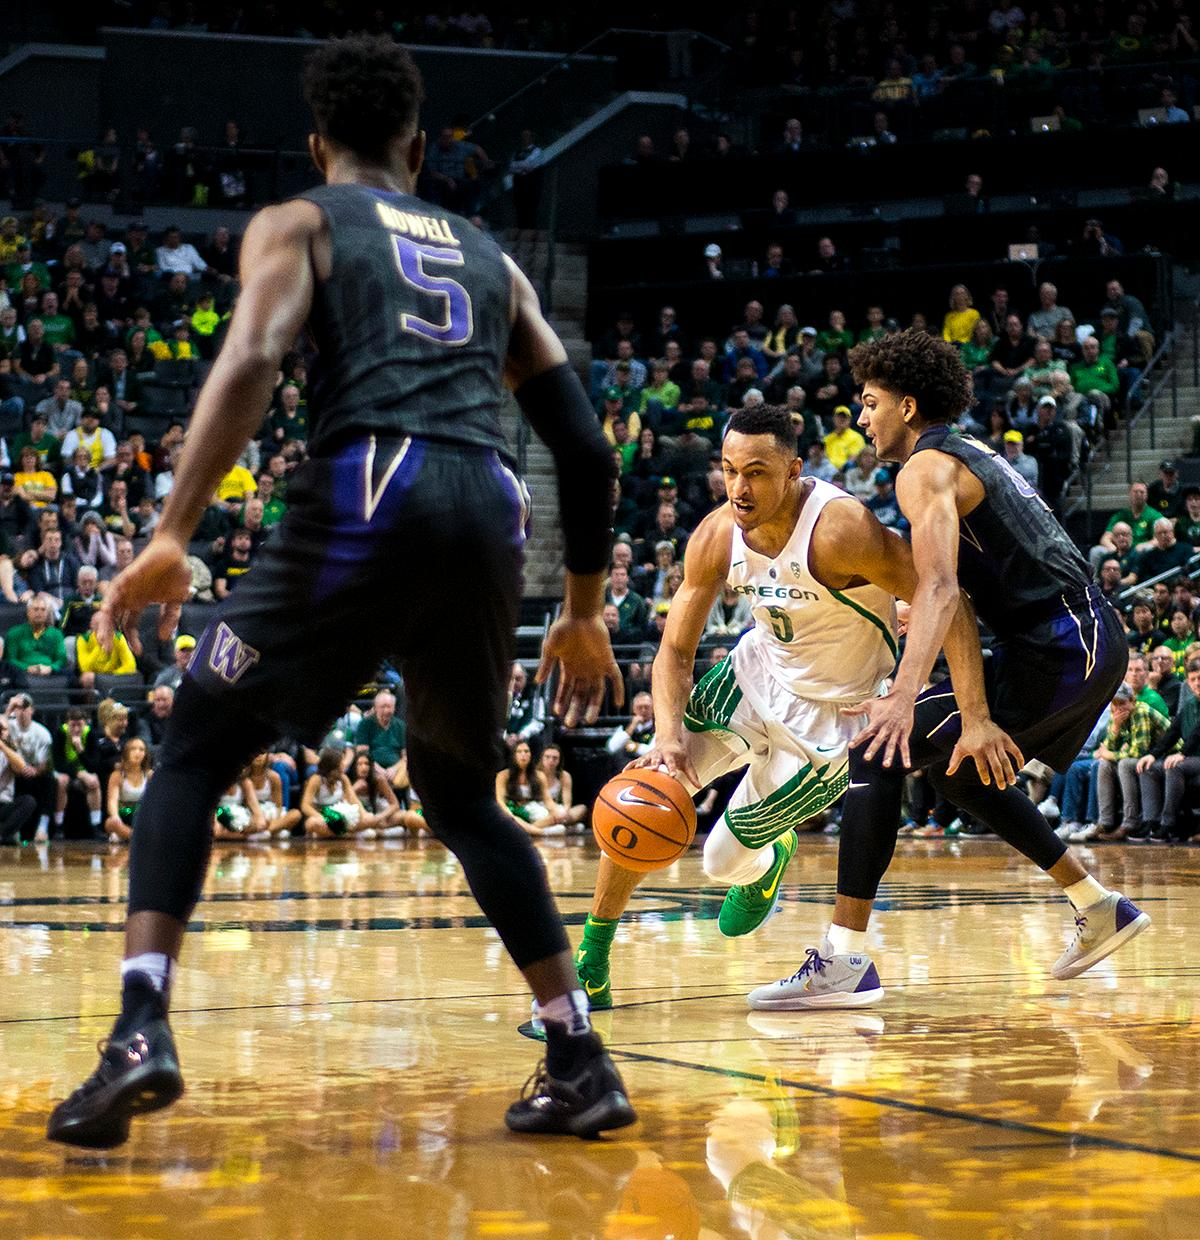 Oregon Ducks guard Elijah Brown (#5) drives hard past Washington Huskies guard Matisse Thybulle (#4). The Oregon Ducks defeated the Washington Huskies 65-40 on Thursday night at Matthew Knight Arena. Troy Brown, Junior led Oregon with 21 points to match his career high, and Kenny Wooten set a career best of seven shots blocked. The Ducks now stand 6-5 in the Pac-12 conference play. Photo by Abigail Winn, Oregon News Lab